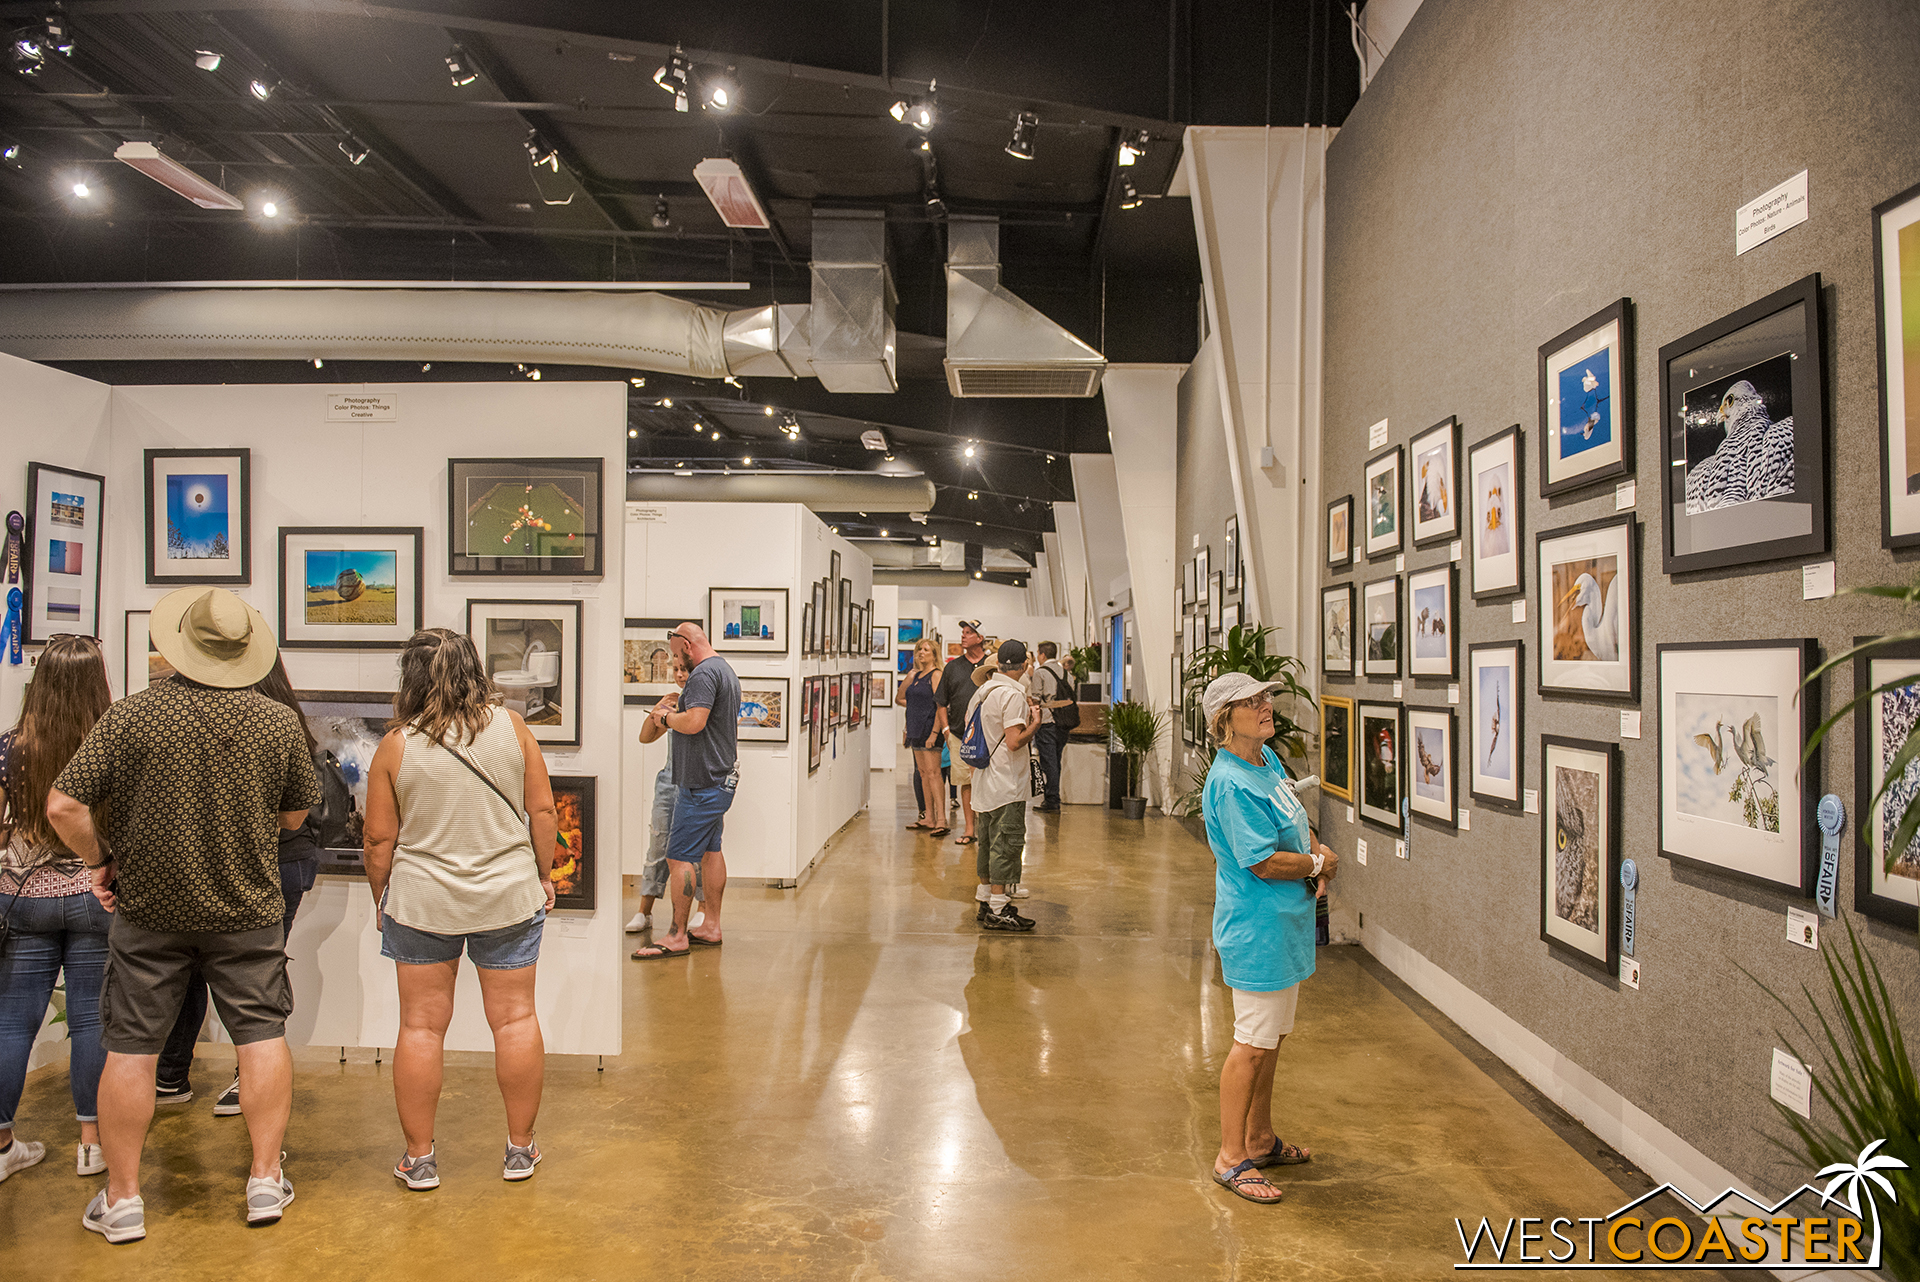 Of course, being a photographer, I most enjoy browsing the photography exhibit every year at the OC Fair.